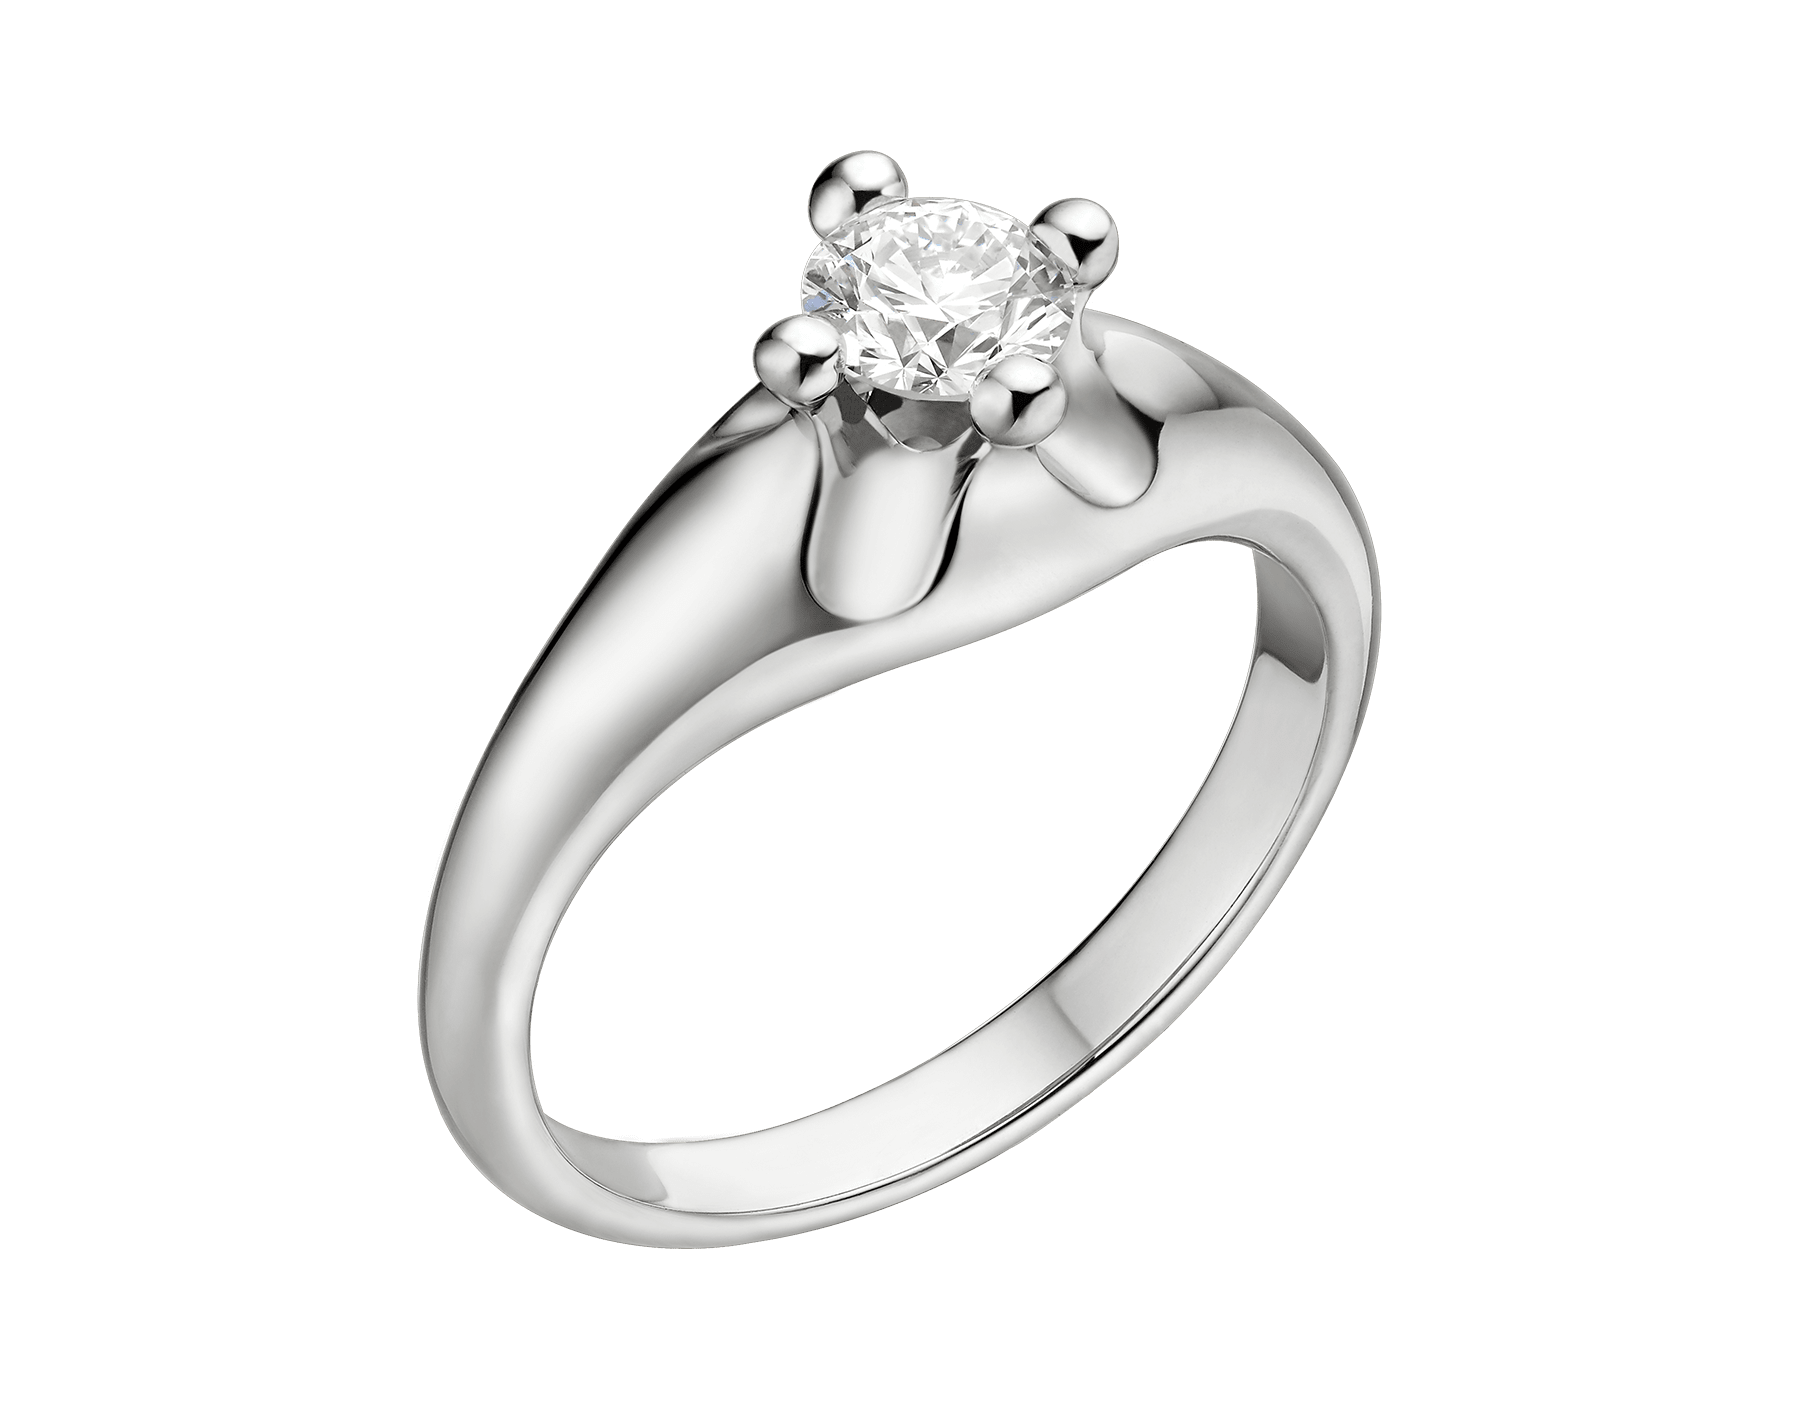 Corona solitaire ring in platinum with round brilliant cut diamond. Available from 0.30 ct. Inspired by the crown and the flower, two enduring symbols of glory and celebration since ancient times. 326295 image 1